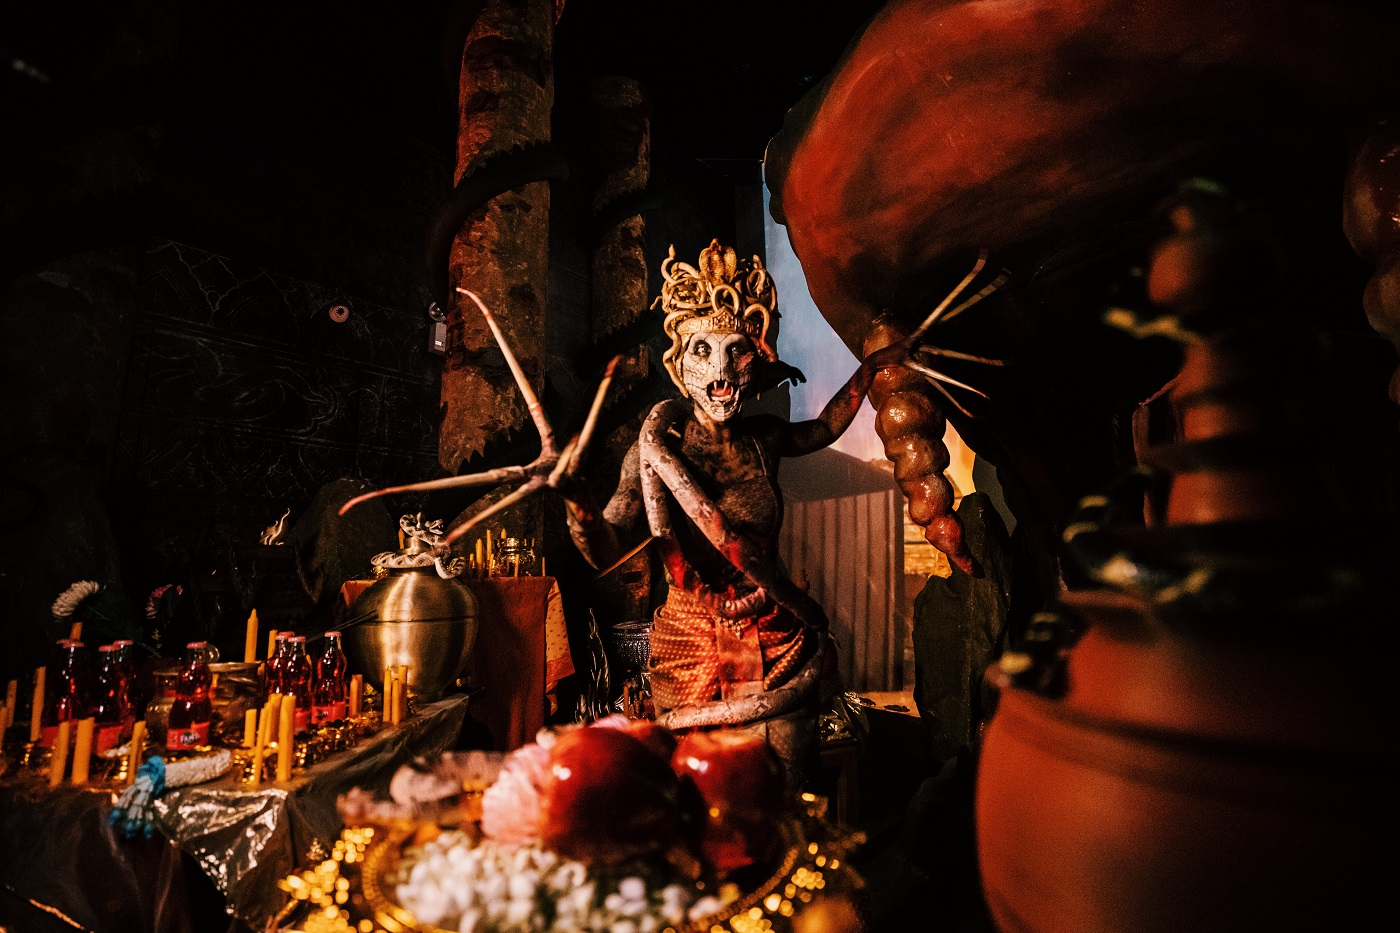 USS Halloween Horror Nights 9 Curse of the Naga preview Serpentine Spirit